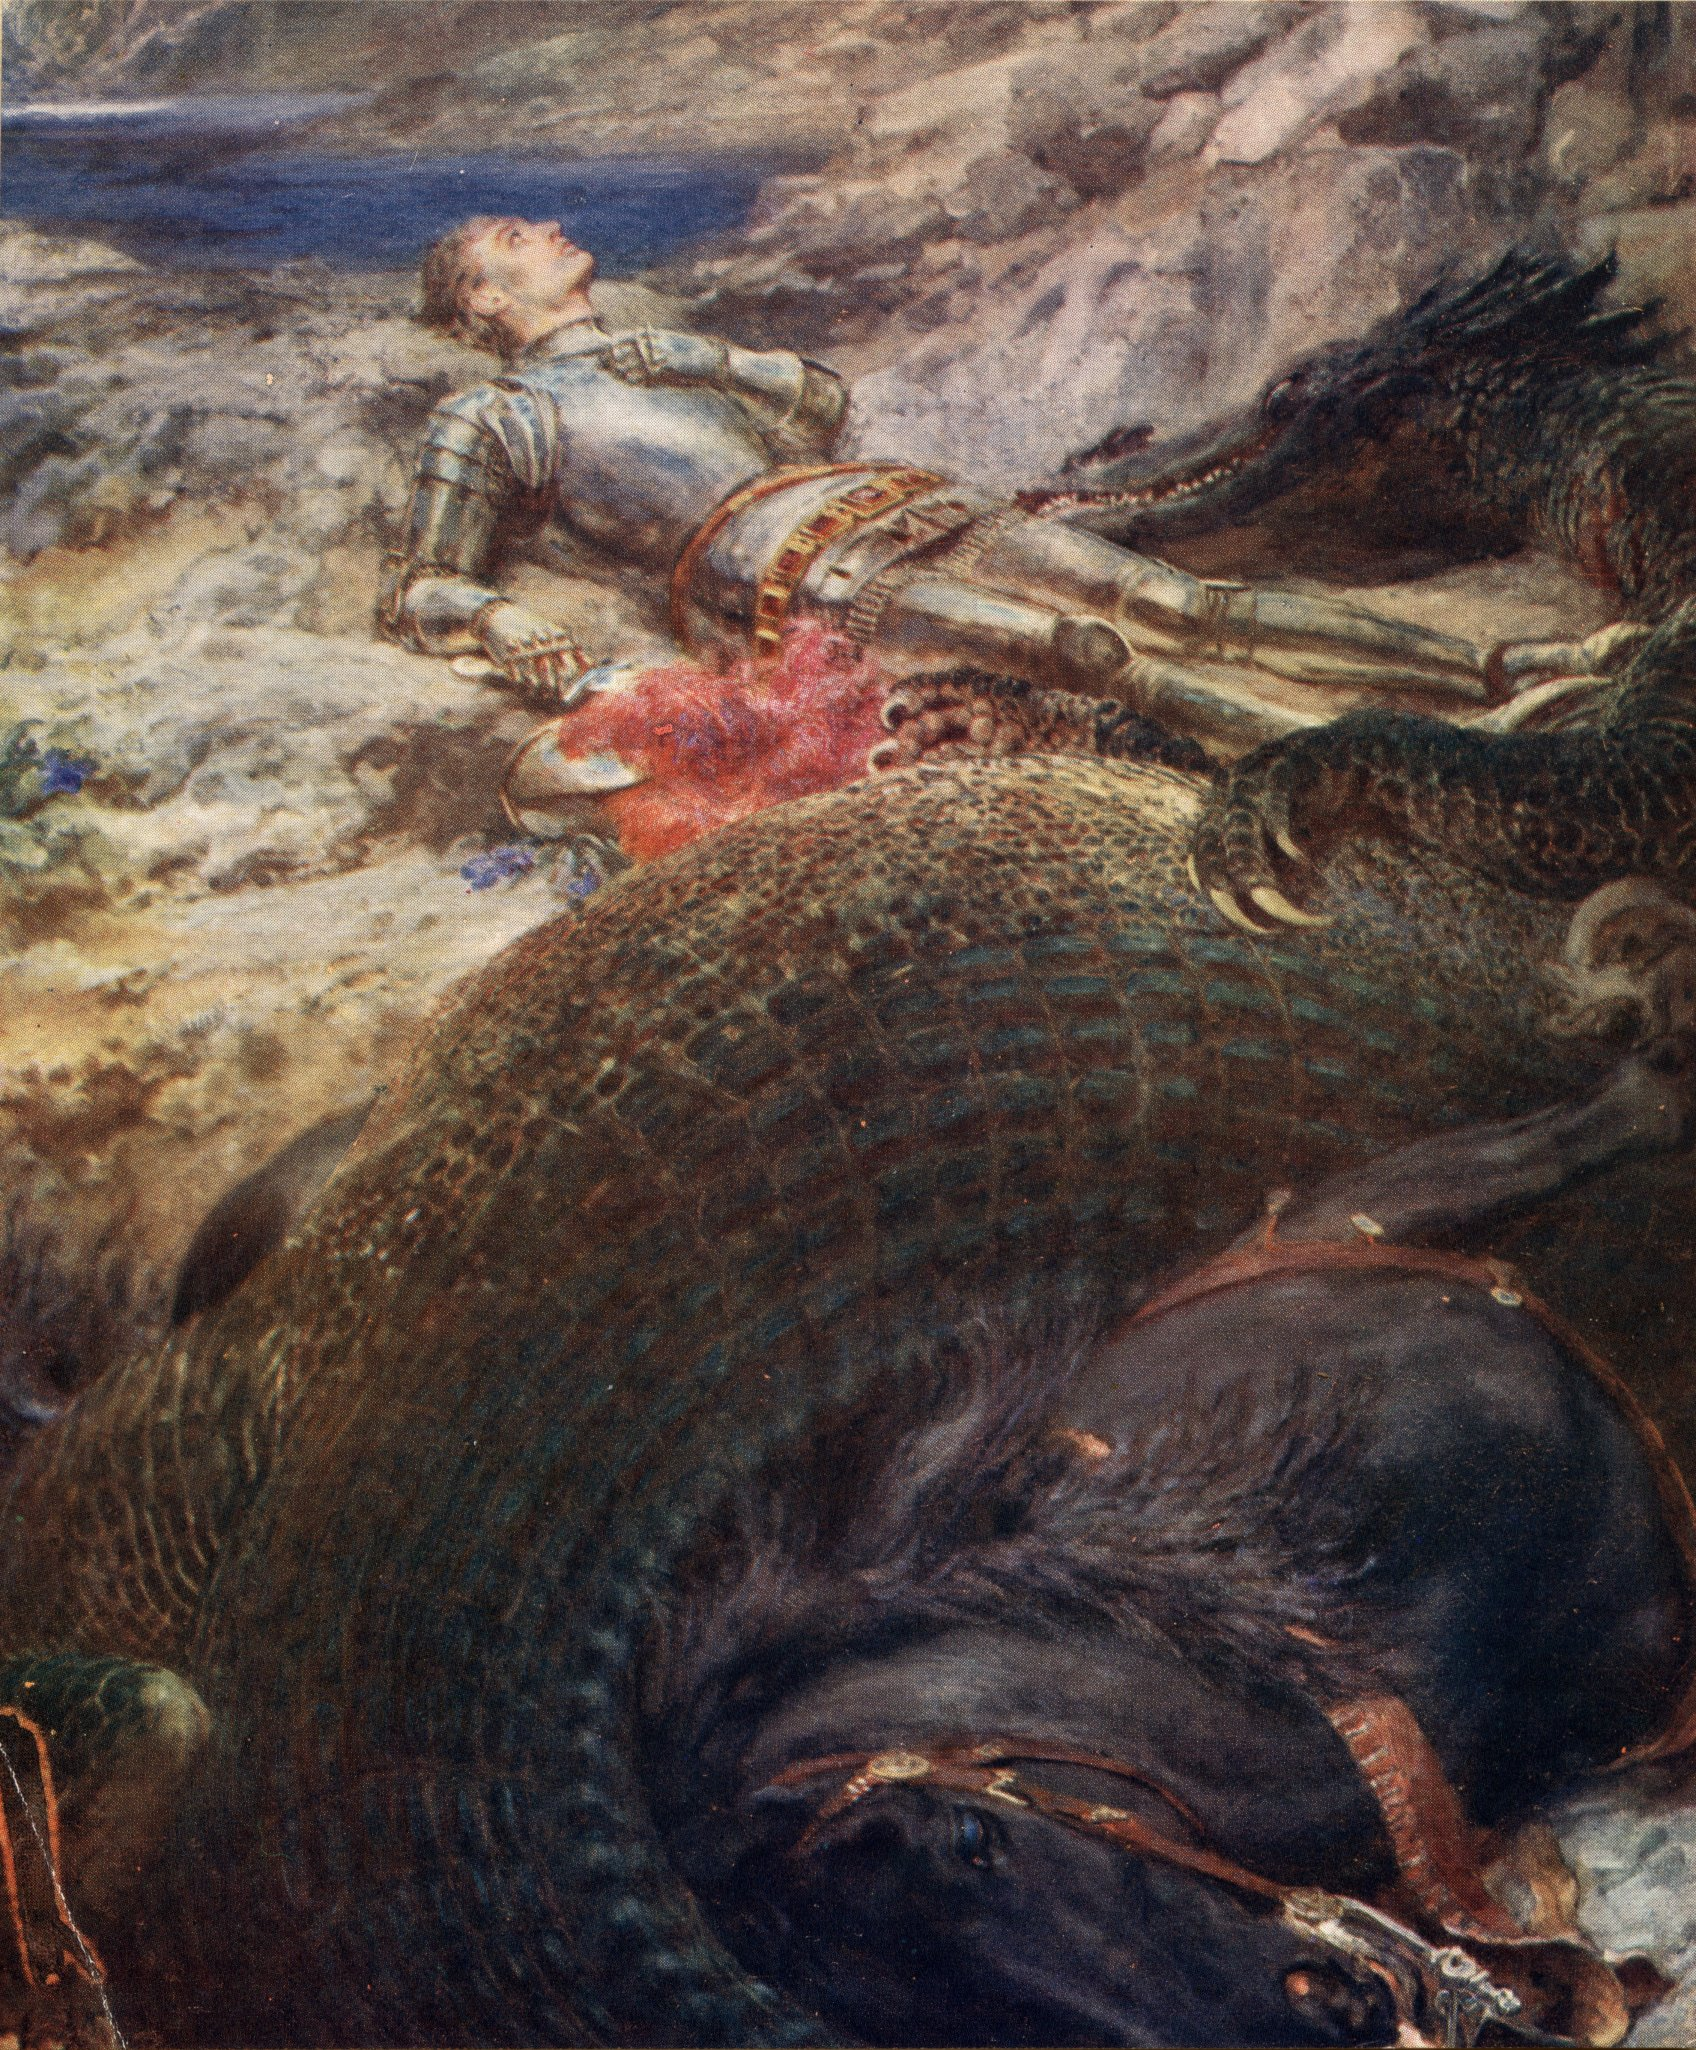 File:St. George and the Dragon - Briton Riviere.jpg - Wikipedia ...